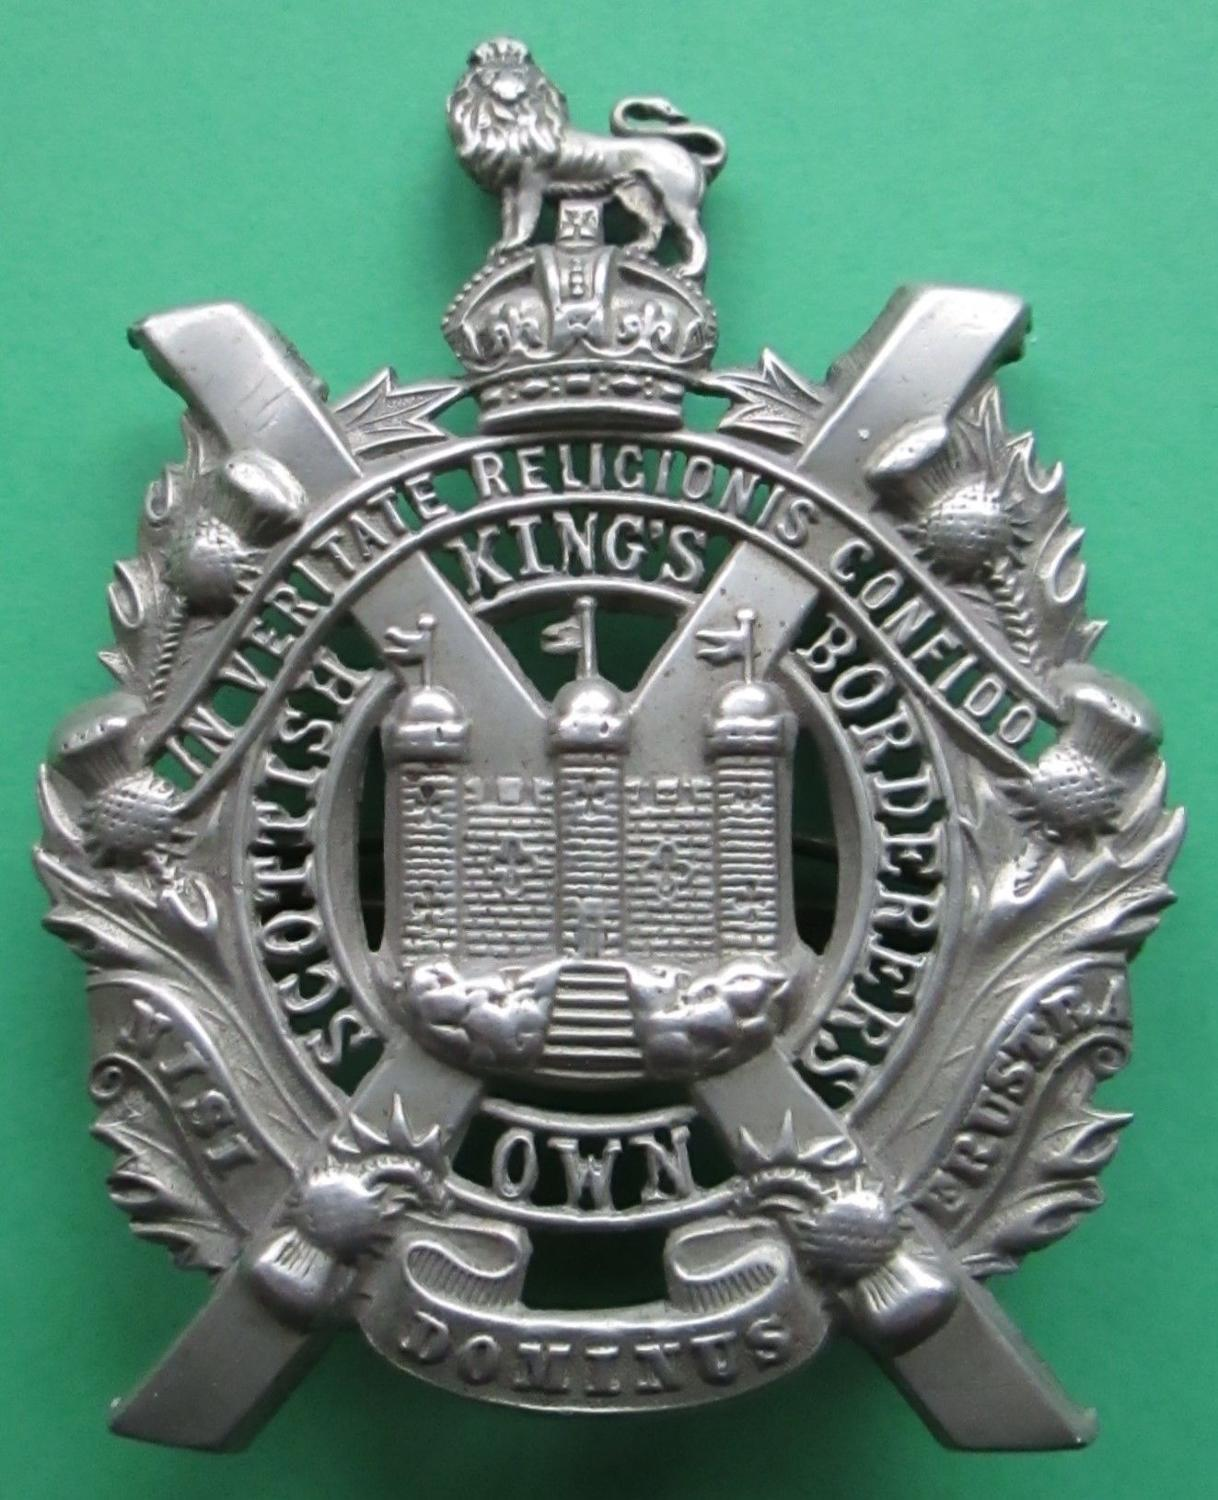 A KINGS OWN SCOTTISH BORDERERS WARRANT OFFICERS BADGE